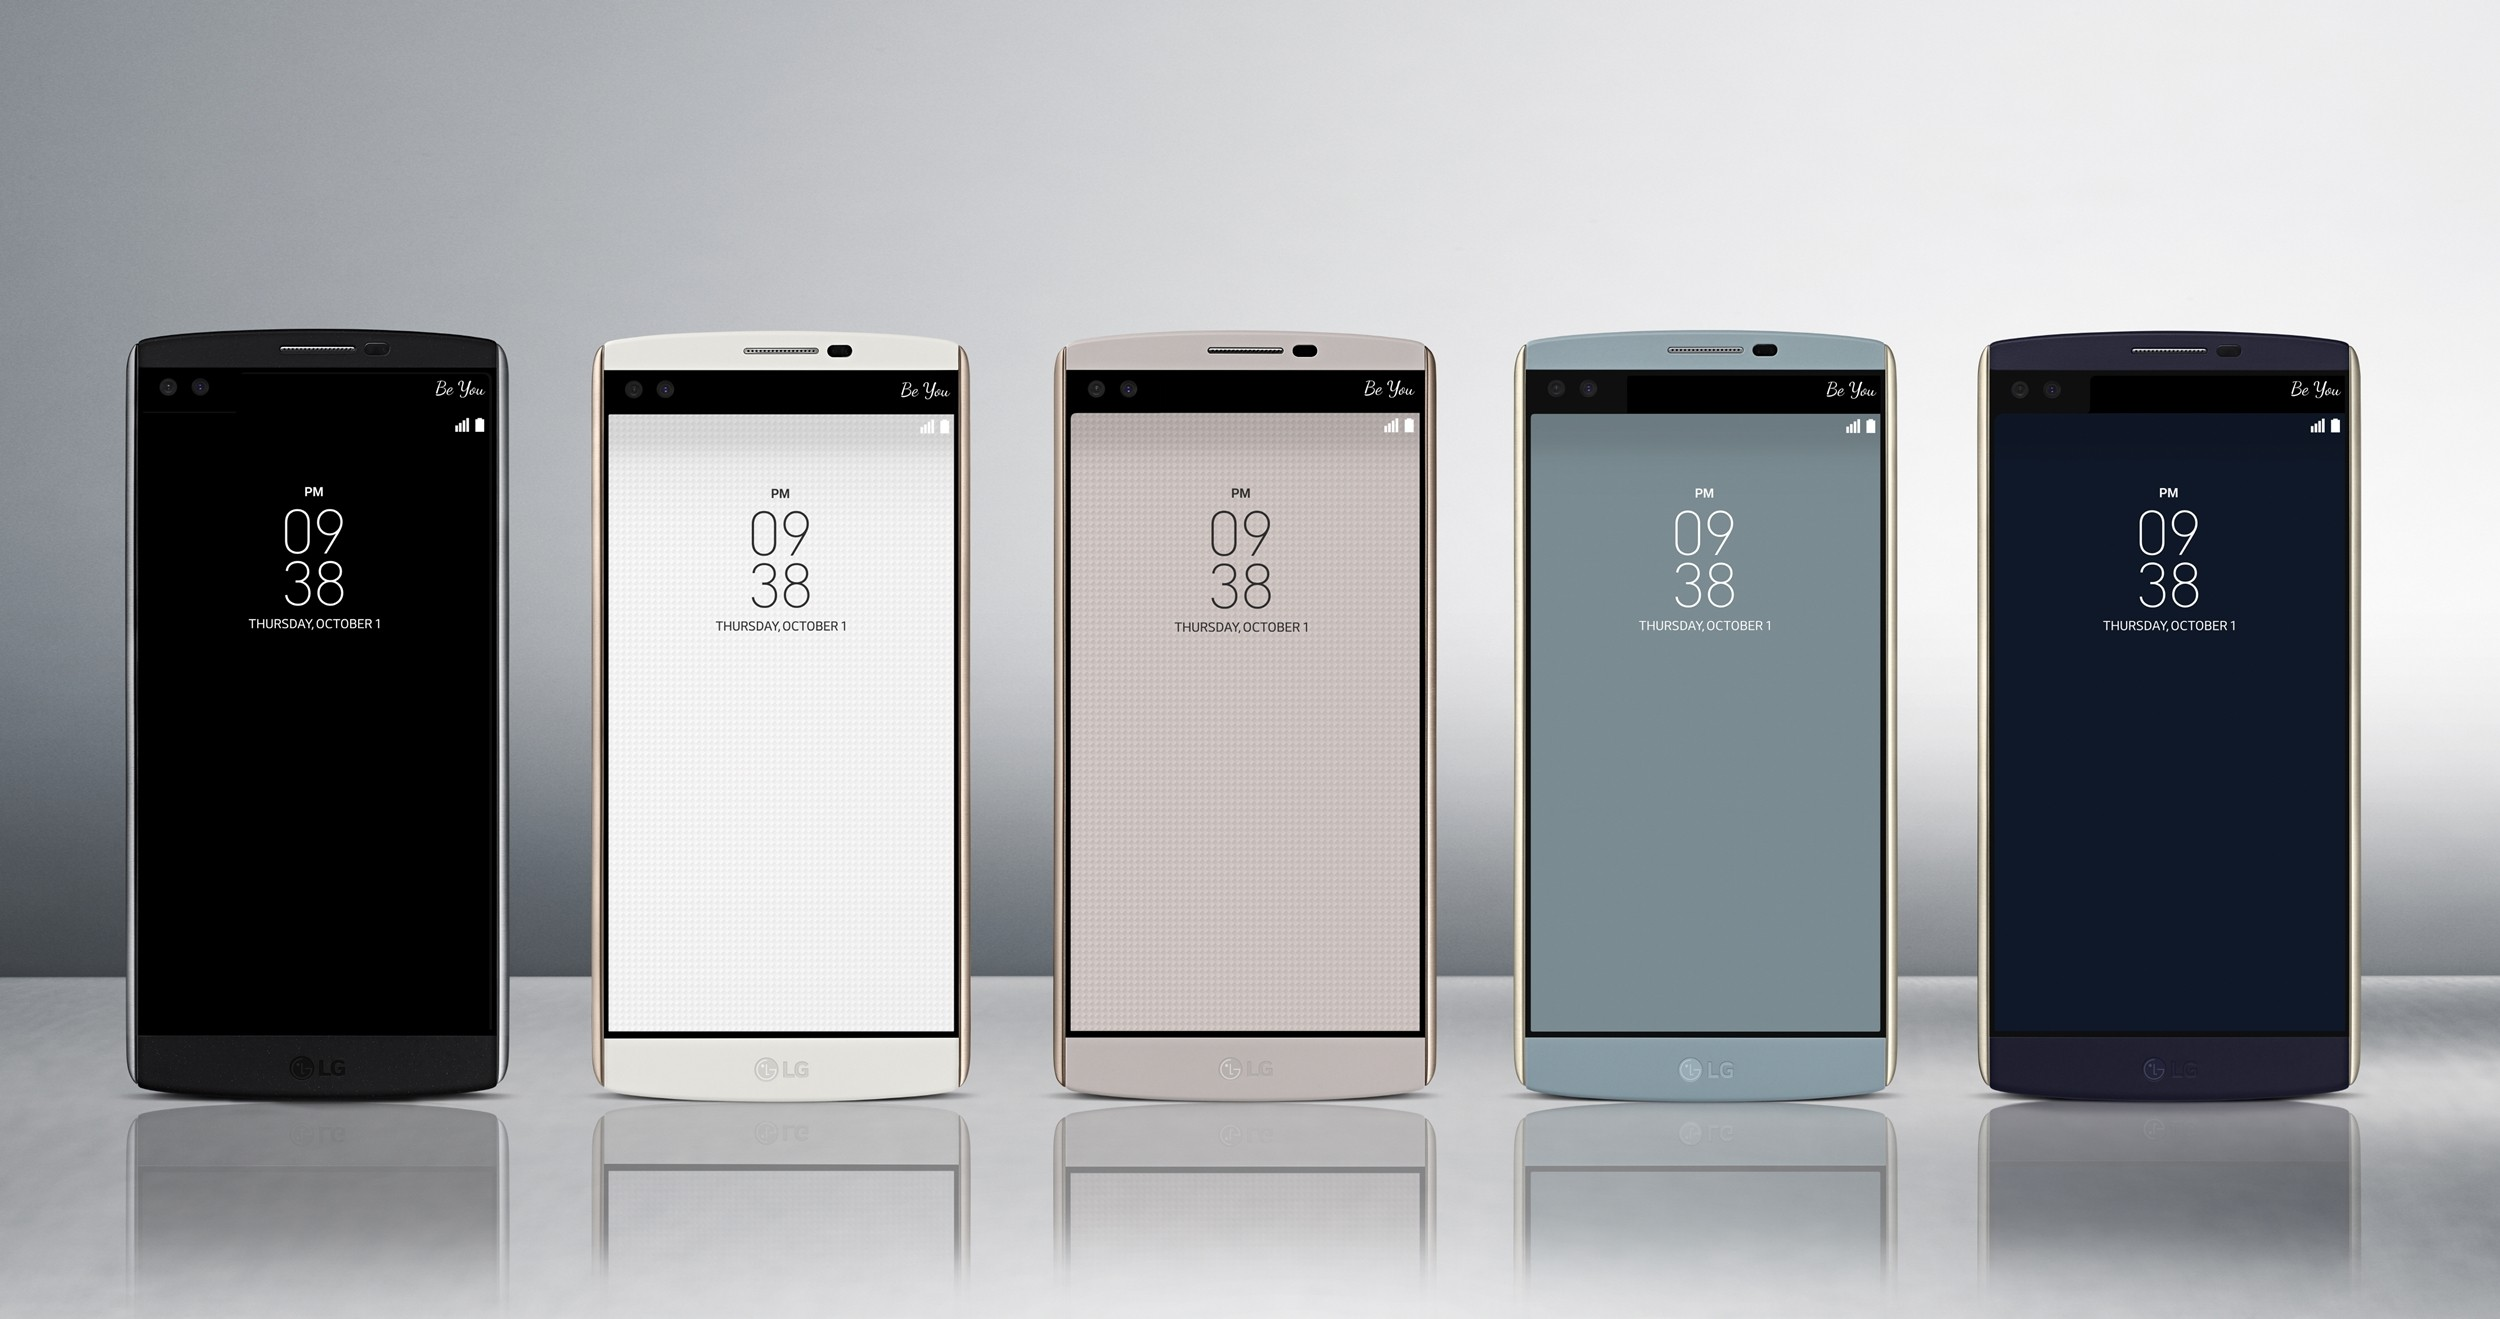 The front view of the LG V10 in Space Black, Luxe White, Modern Beige, Ocean Blue and Opal Blue